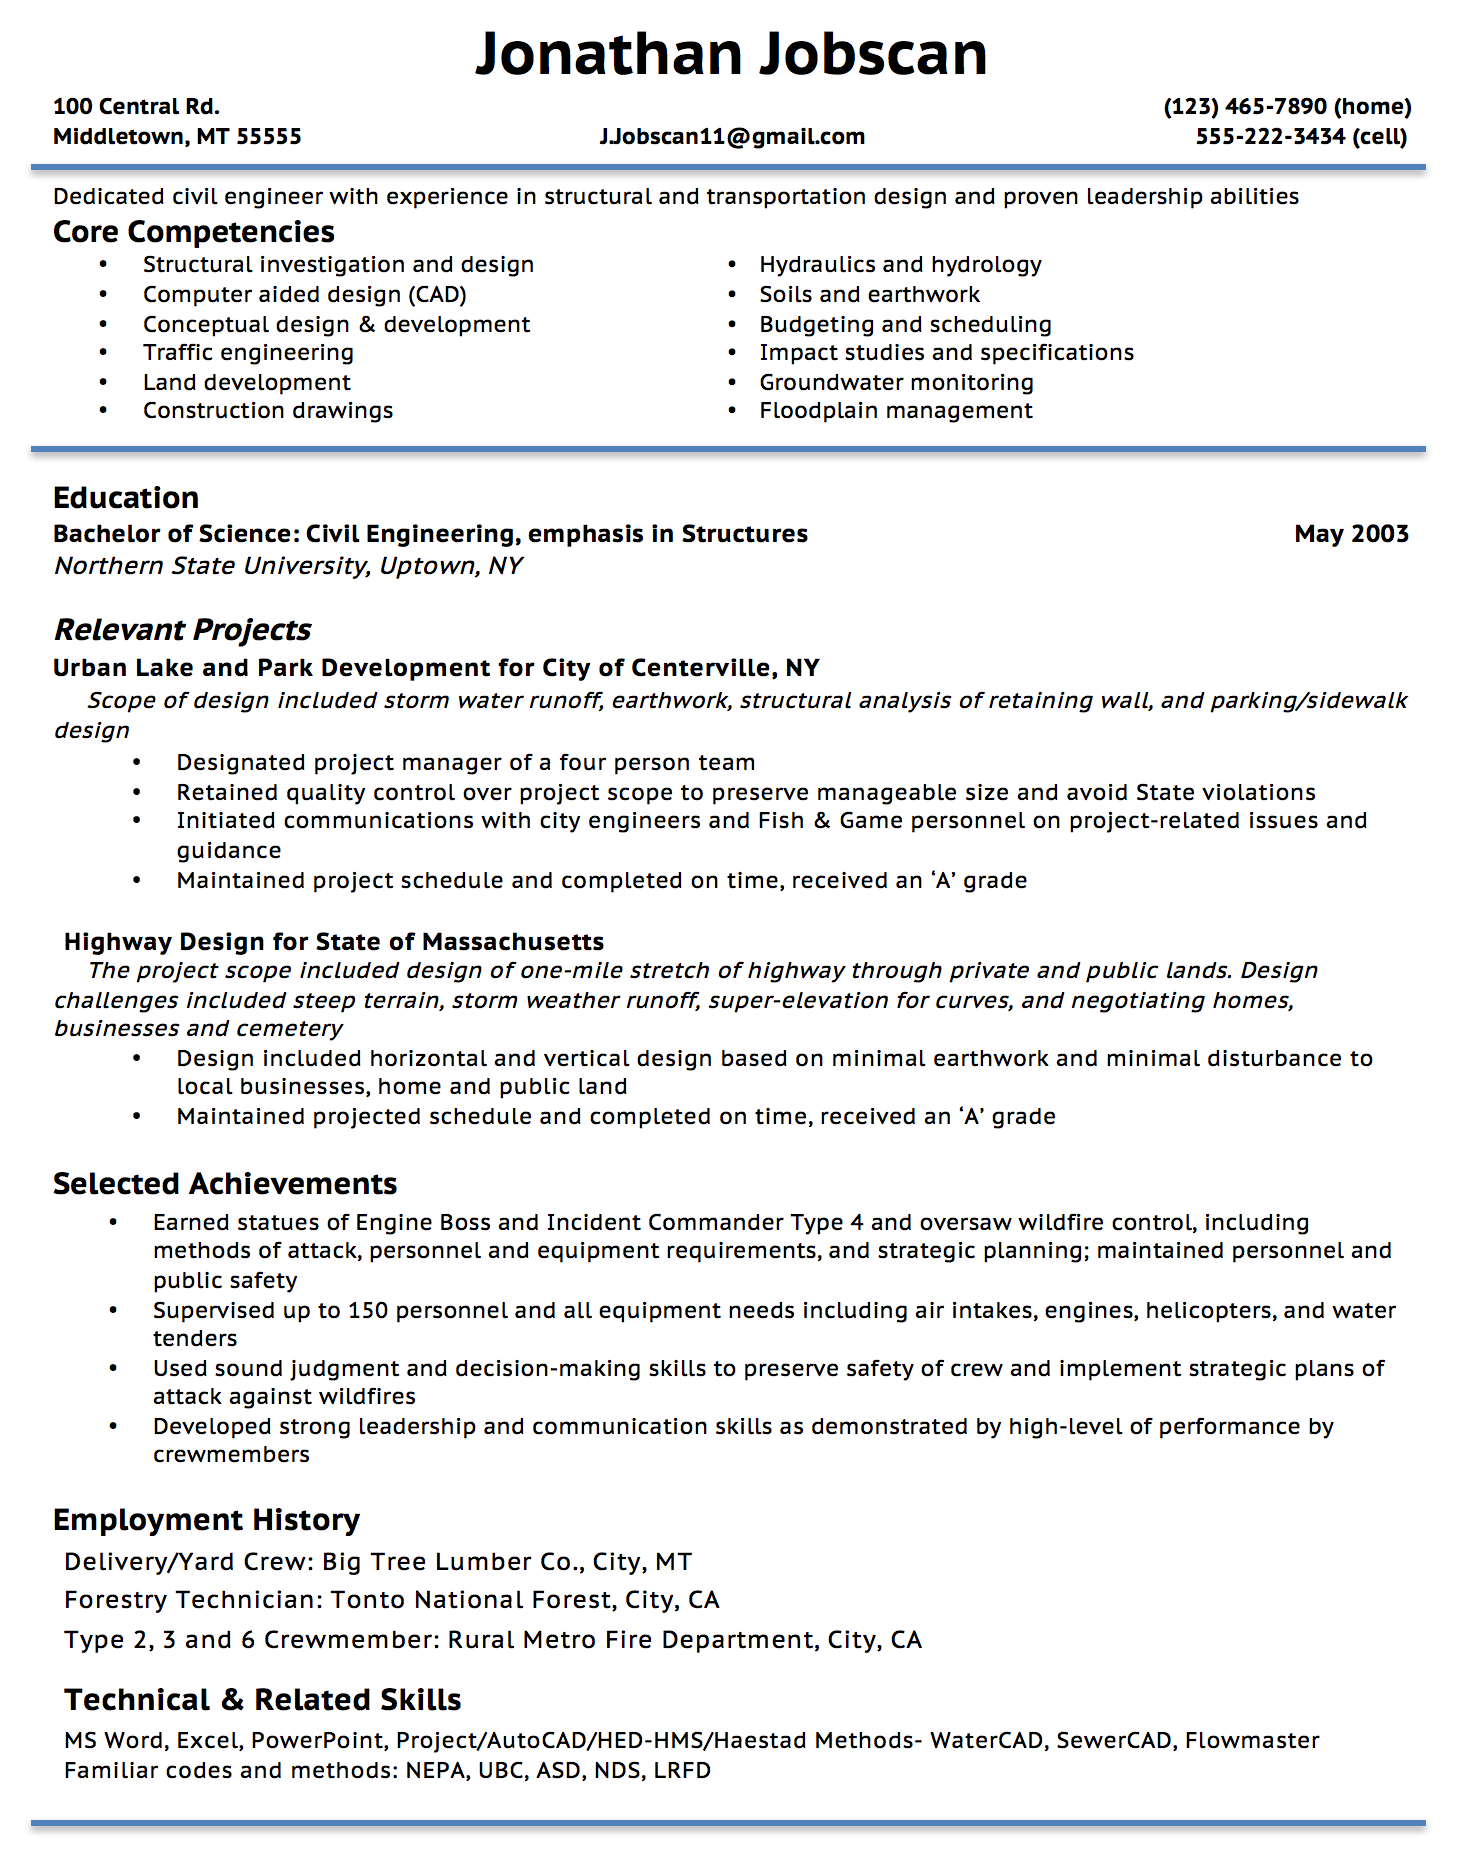 Opposenewapstandardsus  Remarkable Resume Writing Guide  Jobscan With Fetching Example Of A Functional Resume Format With Lovely How Write Resume Also What Is A Cover Letter In A Resume In Addition Skills And Abilities On Resume Examples And Resume Template Office As Well As Security Specialist Resume Additionally Please Find Enclosed My Resume From Jobscanco With Opposenewapstandardsus  Fetching Resume Writing Guide  Jobscan With Lovely Example Of A Functional Resume Format And Remarkable How Write Resume Also What Is A Cover Letter In A Resume In Addition Skills And Abilities On Resume Examples From Jobscanco